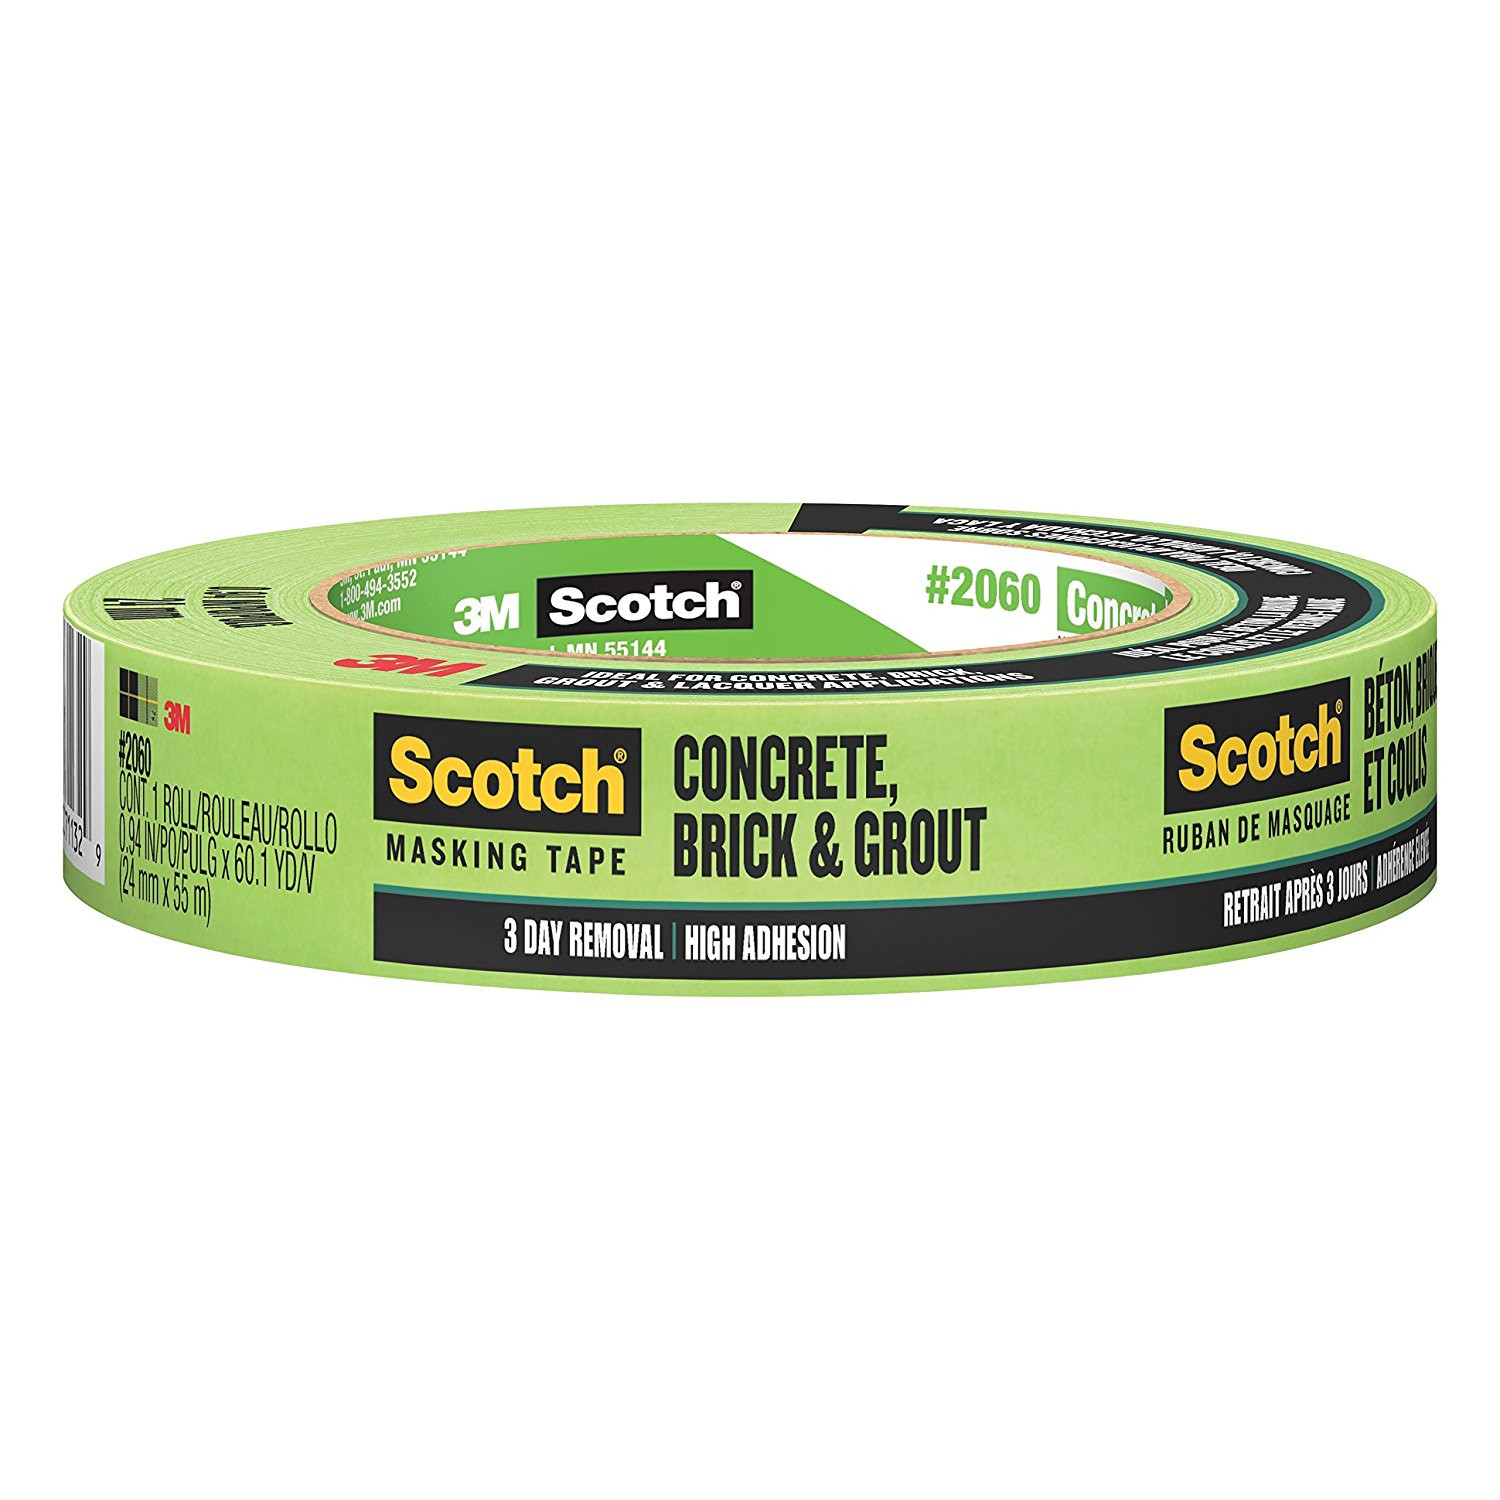 mohawk hardwood and laminate floor cleaner msds of scotch masking tape for hard to stick surfaces 2060 24a 1 inch by for scotch masking tape for hard to stick surfaces 2060 24a 1 inch by 60 yards 1 roll painters masking tape amazon com